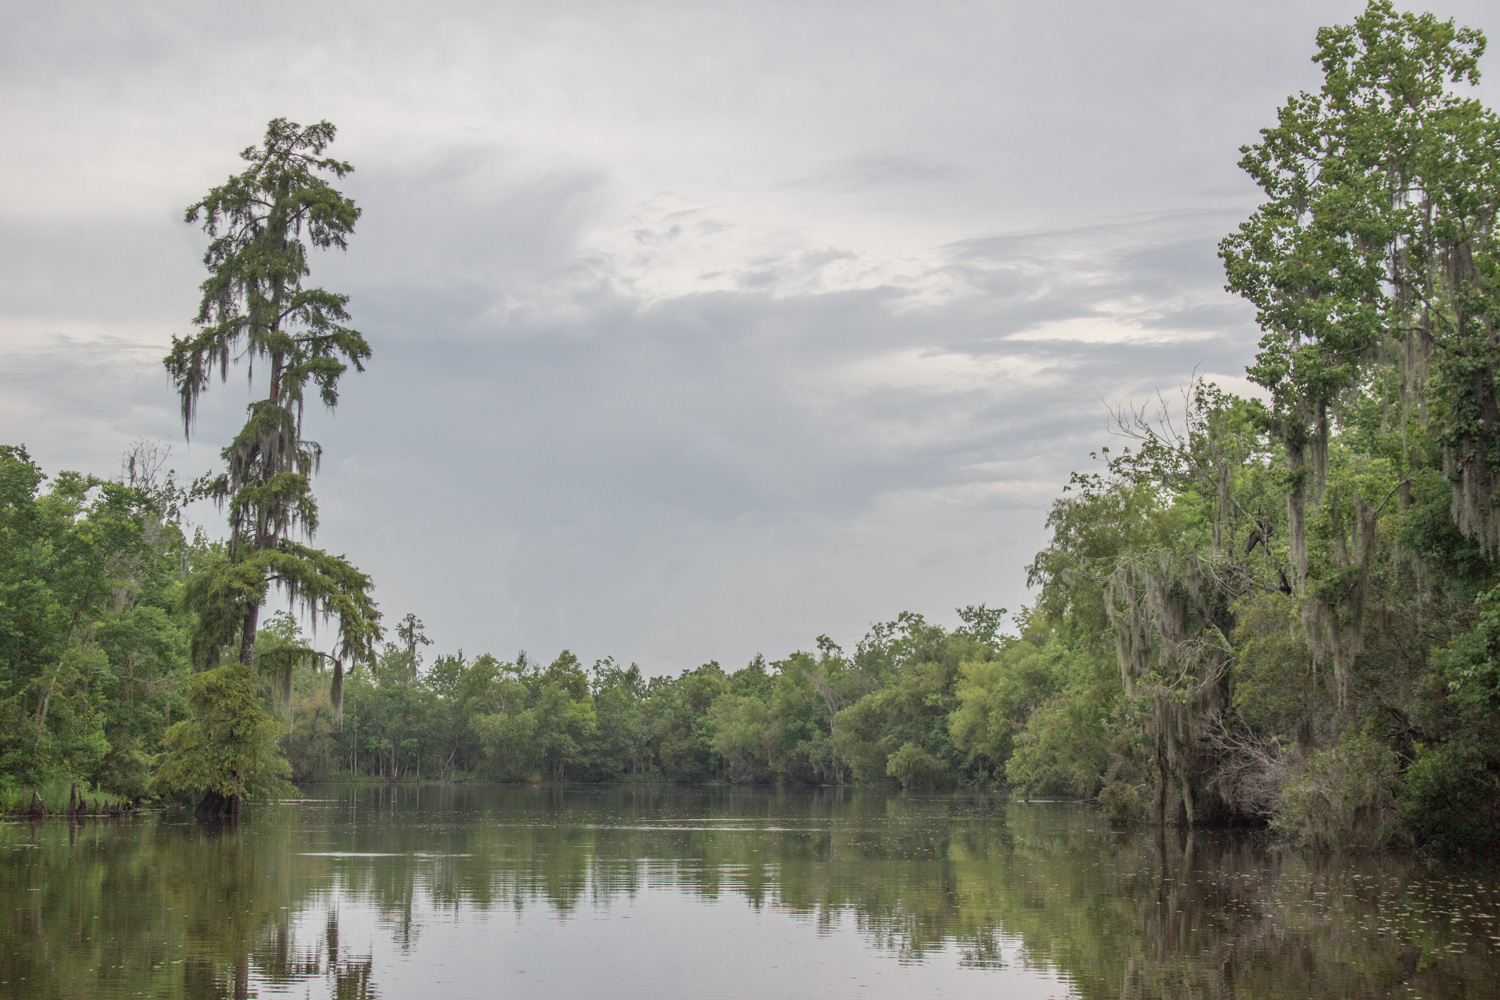 https://i1.wp.com/digital-photography-school.com/wp-content/uploads/2018/12/lightroom-range-mask-nature-photos-bayou-original.jpg?resize=1500%2C1000&ssl=1